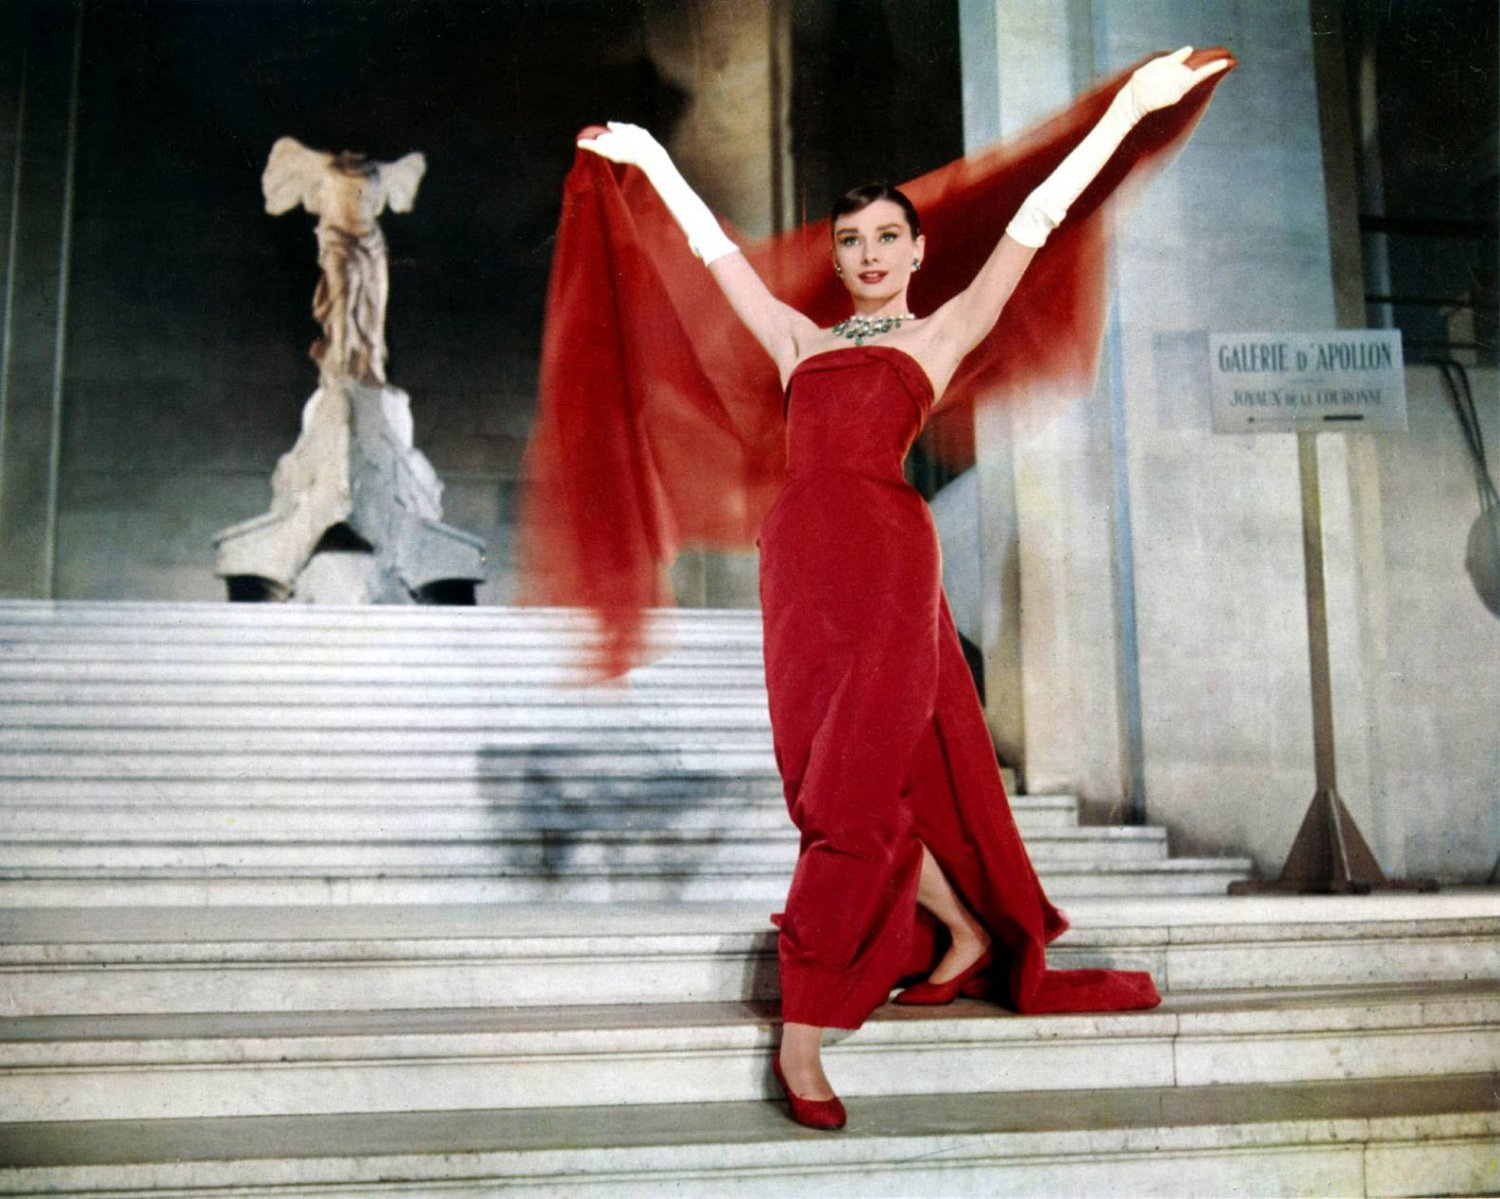 """AUDREY HEPBURN IN THE 1957 FILM """"FUNNY FACE"""" - 8X10 PUBLICITY PHOTO (OP-045)"""